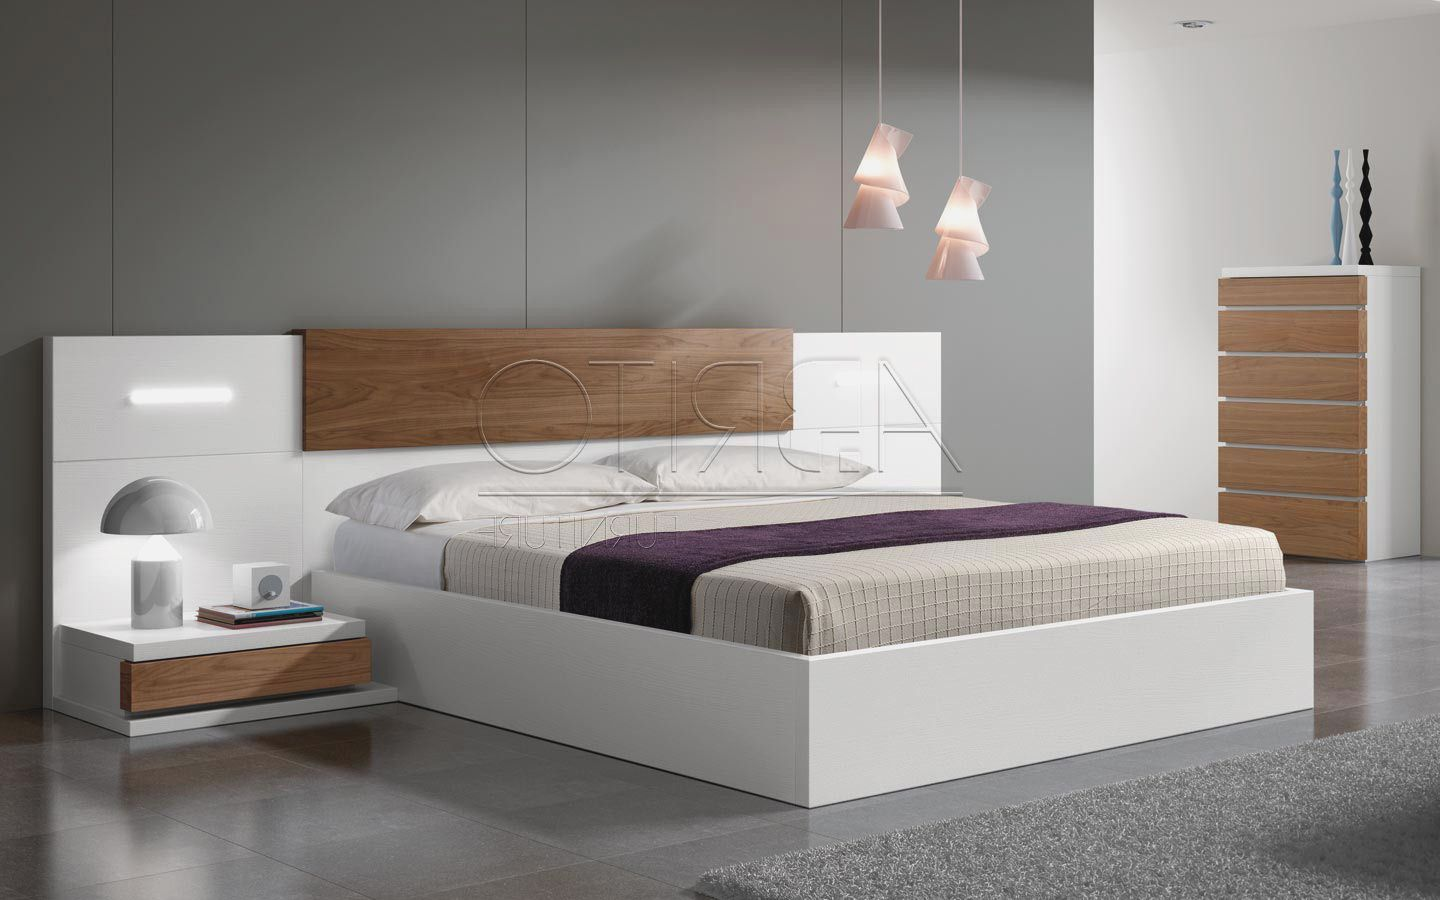 Double Bed Designs With Storage Images more picture Double